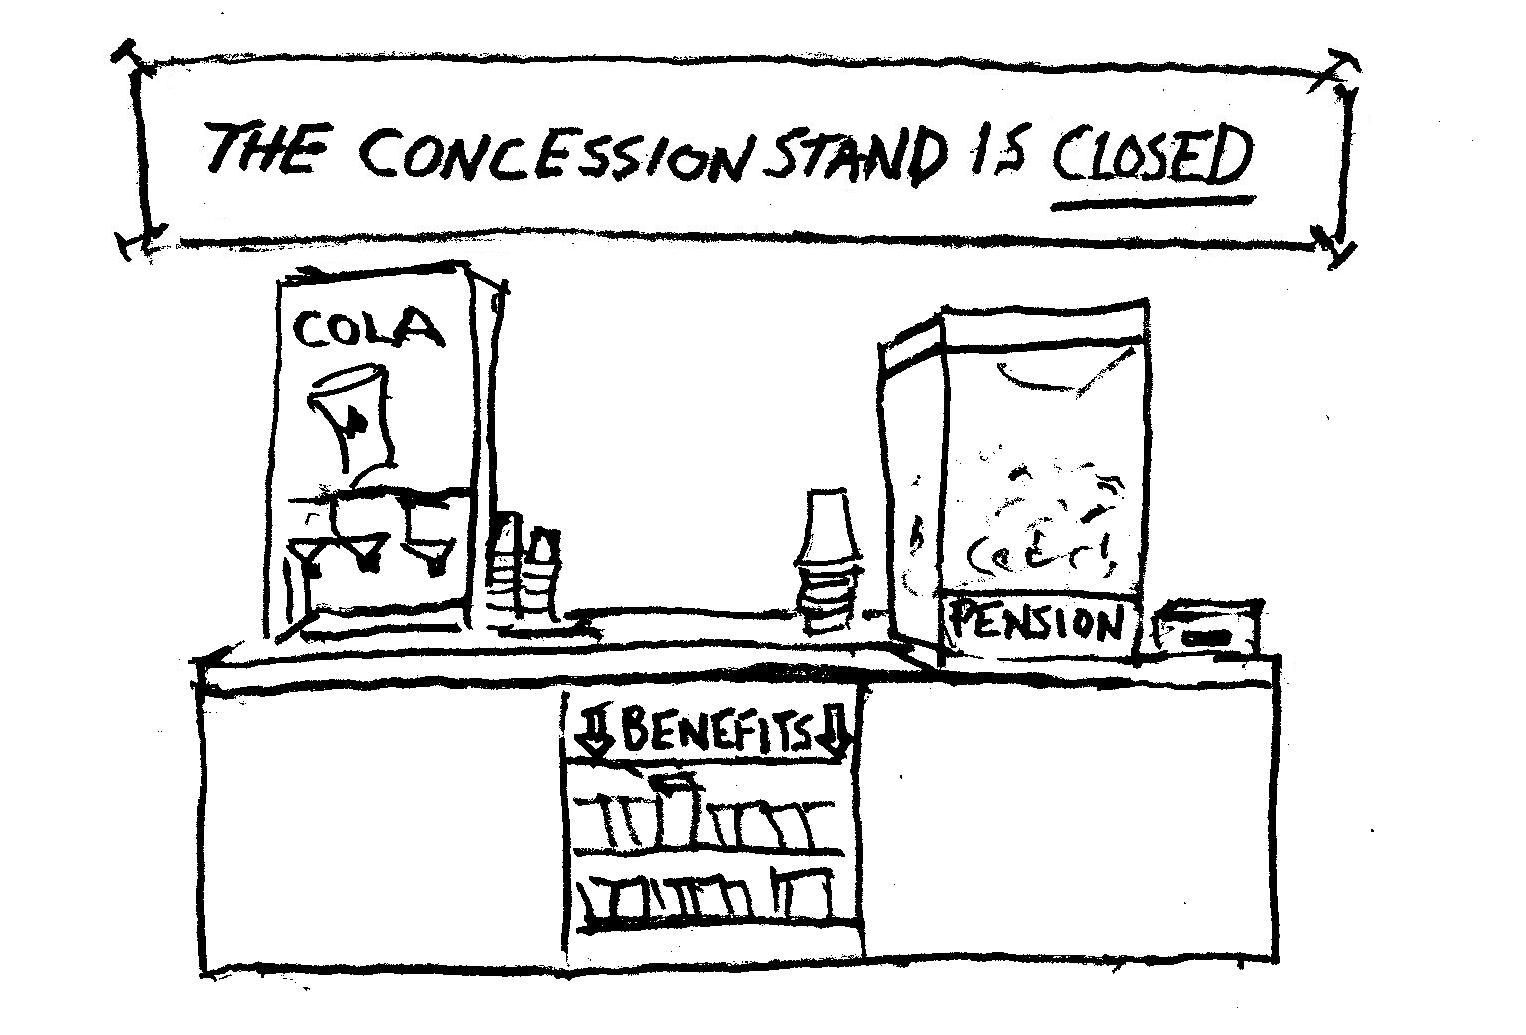 The Concession Stand is Closed